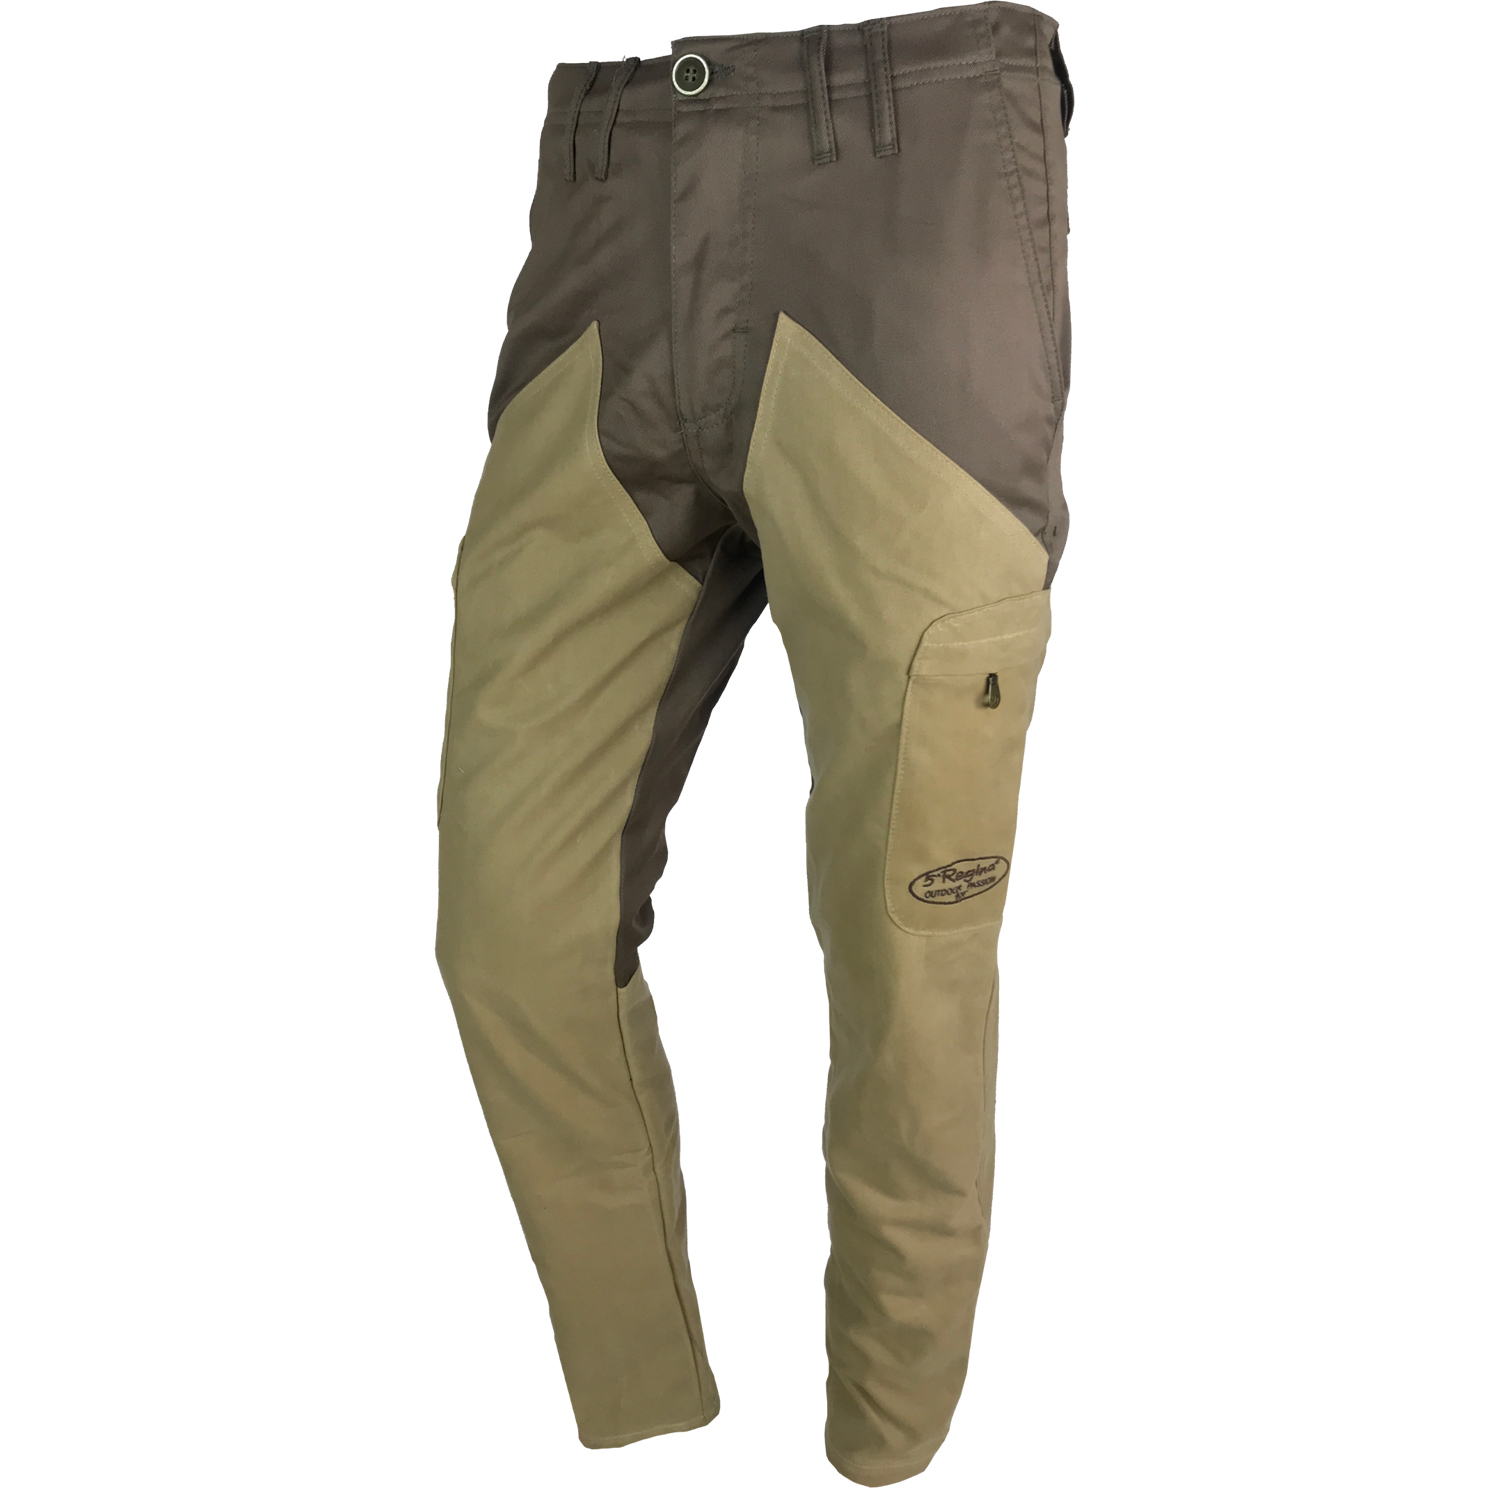 Pants waxed cotton waterproof rain hunting trousers technical